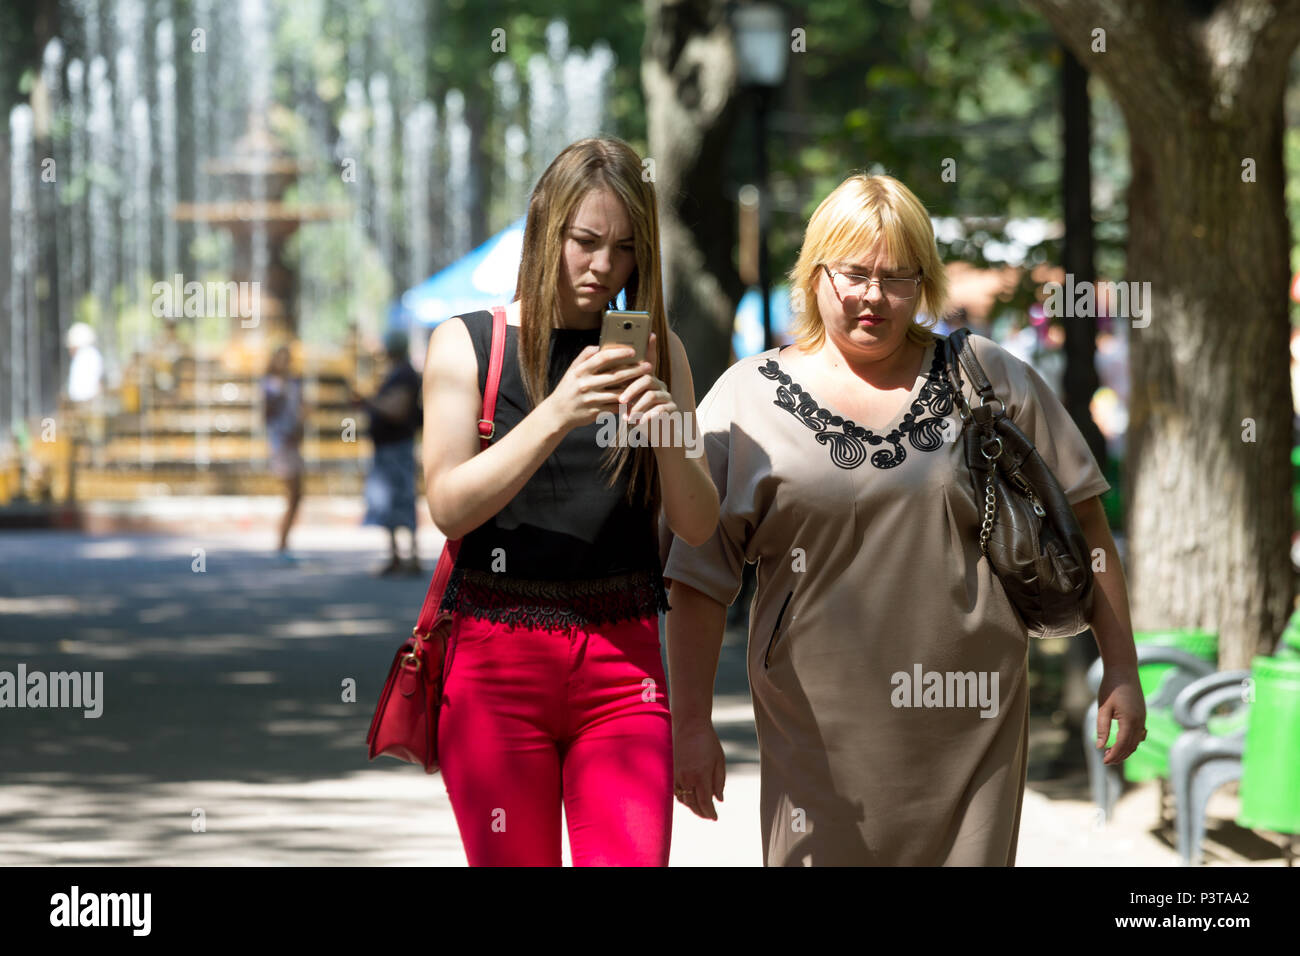 Moldova, Chisinau - Two young women in the park (Parcul